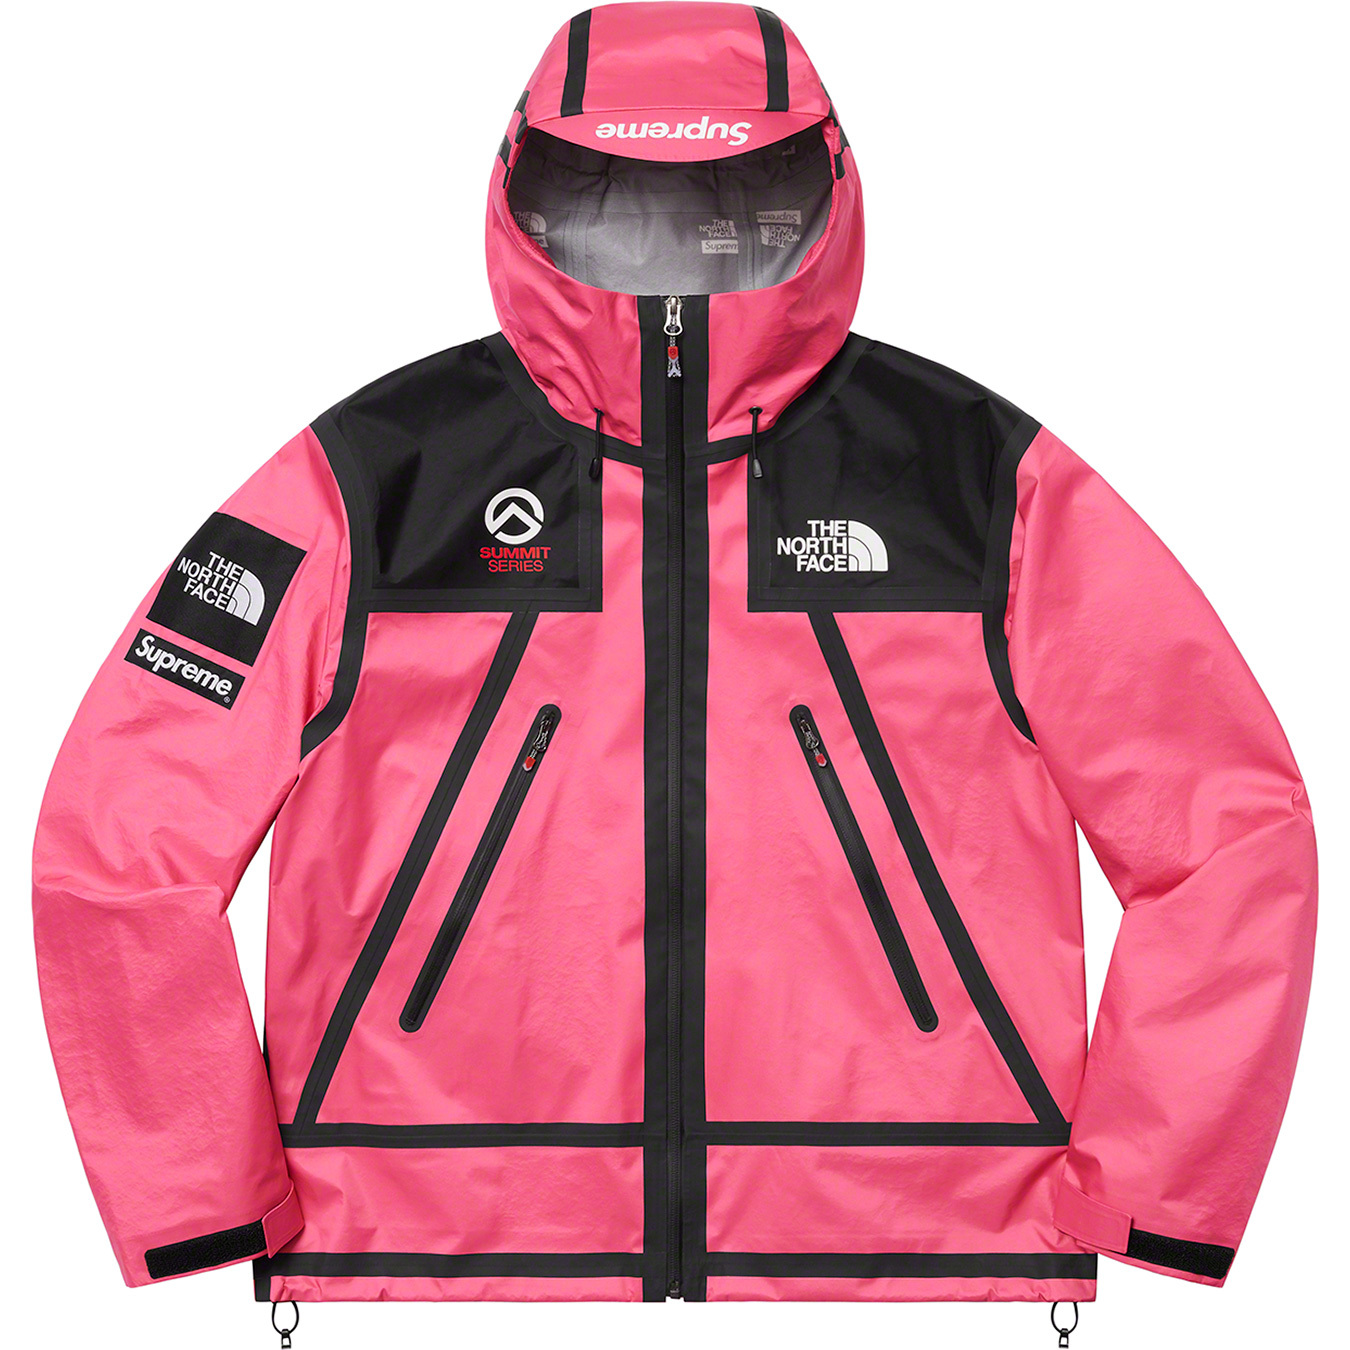 supreme-the-north-face-summit-series-outer-tape-seam-collection-release-21ss-20210529-week14-shell-jacket